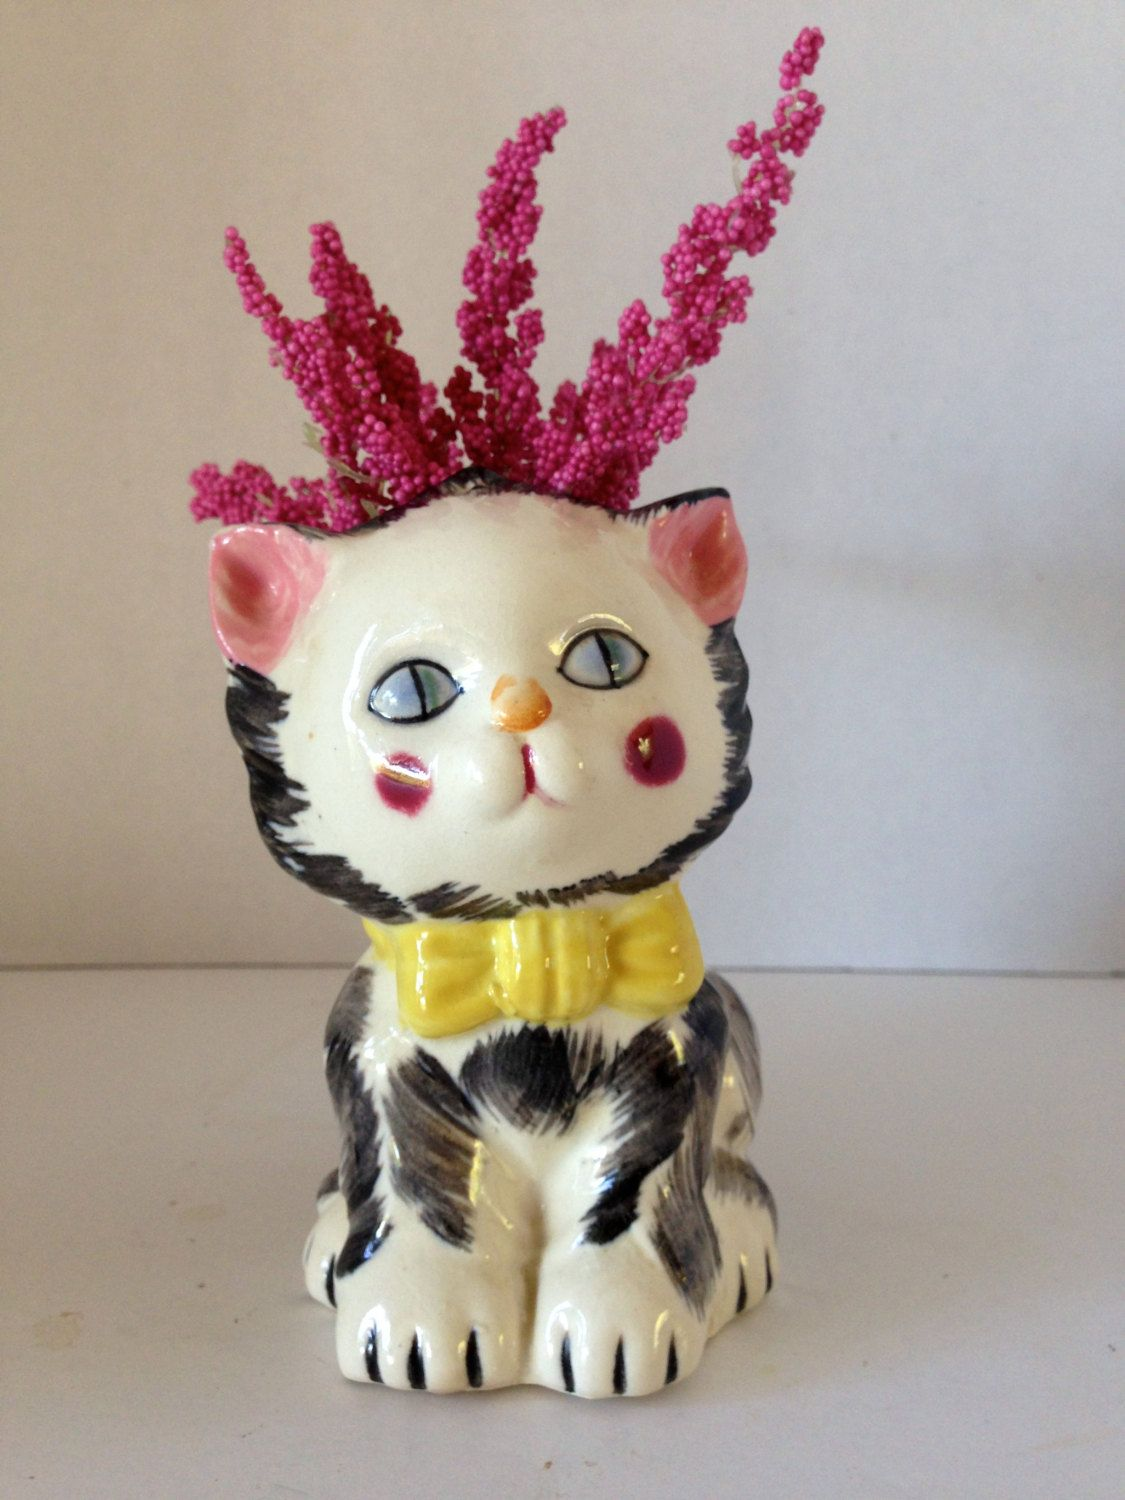 Vintage Ceramic Kitty Cat Planter with Pink Rosey Cheeks by LemonlyPink on Etsy